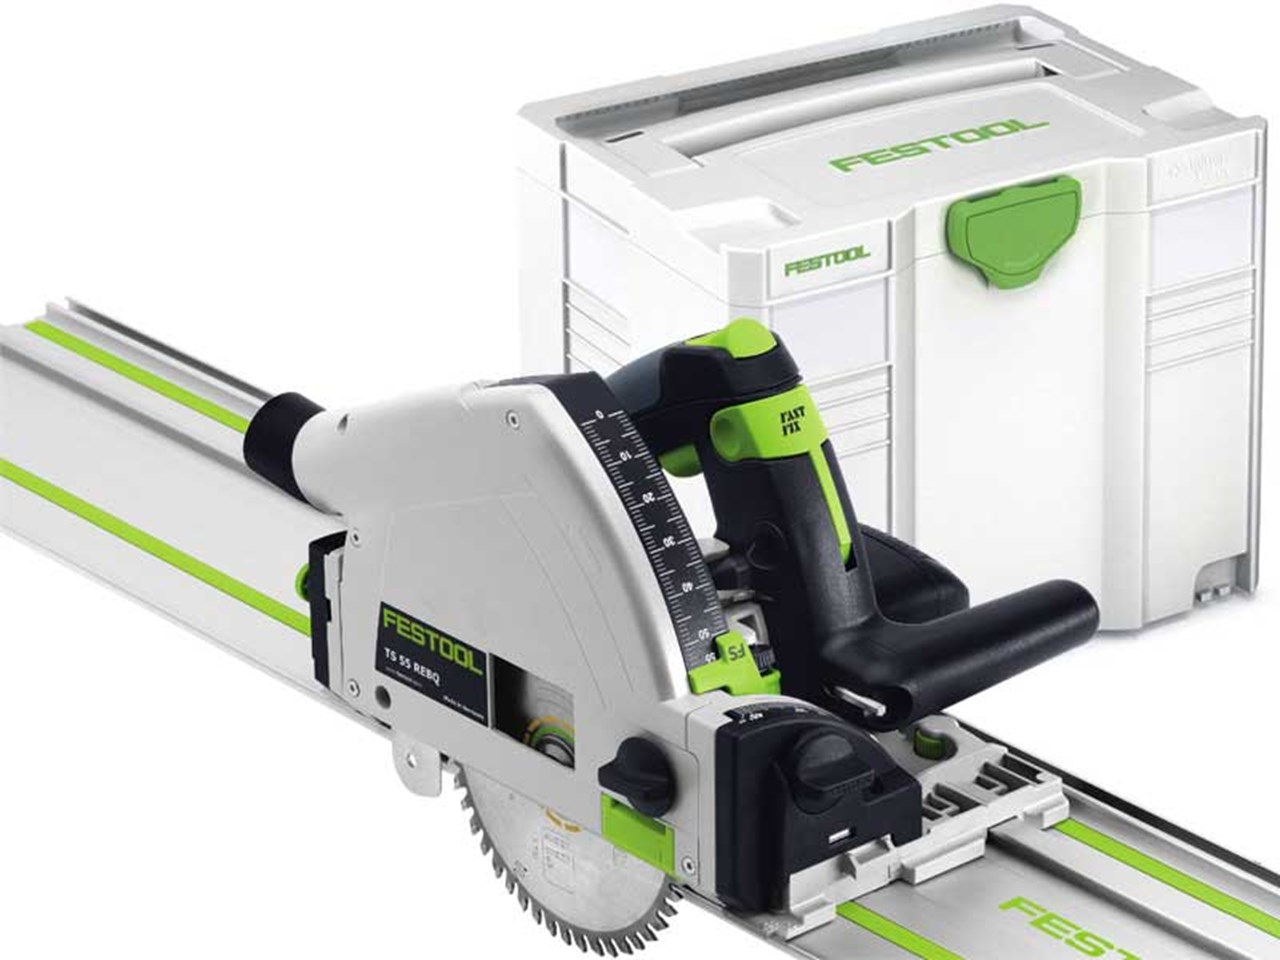 festool ts55 rebq plus f 240v plunge saw with guide rail in systainer 4. Black Bedroom Furniture Sets. Home Design Ideas